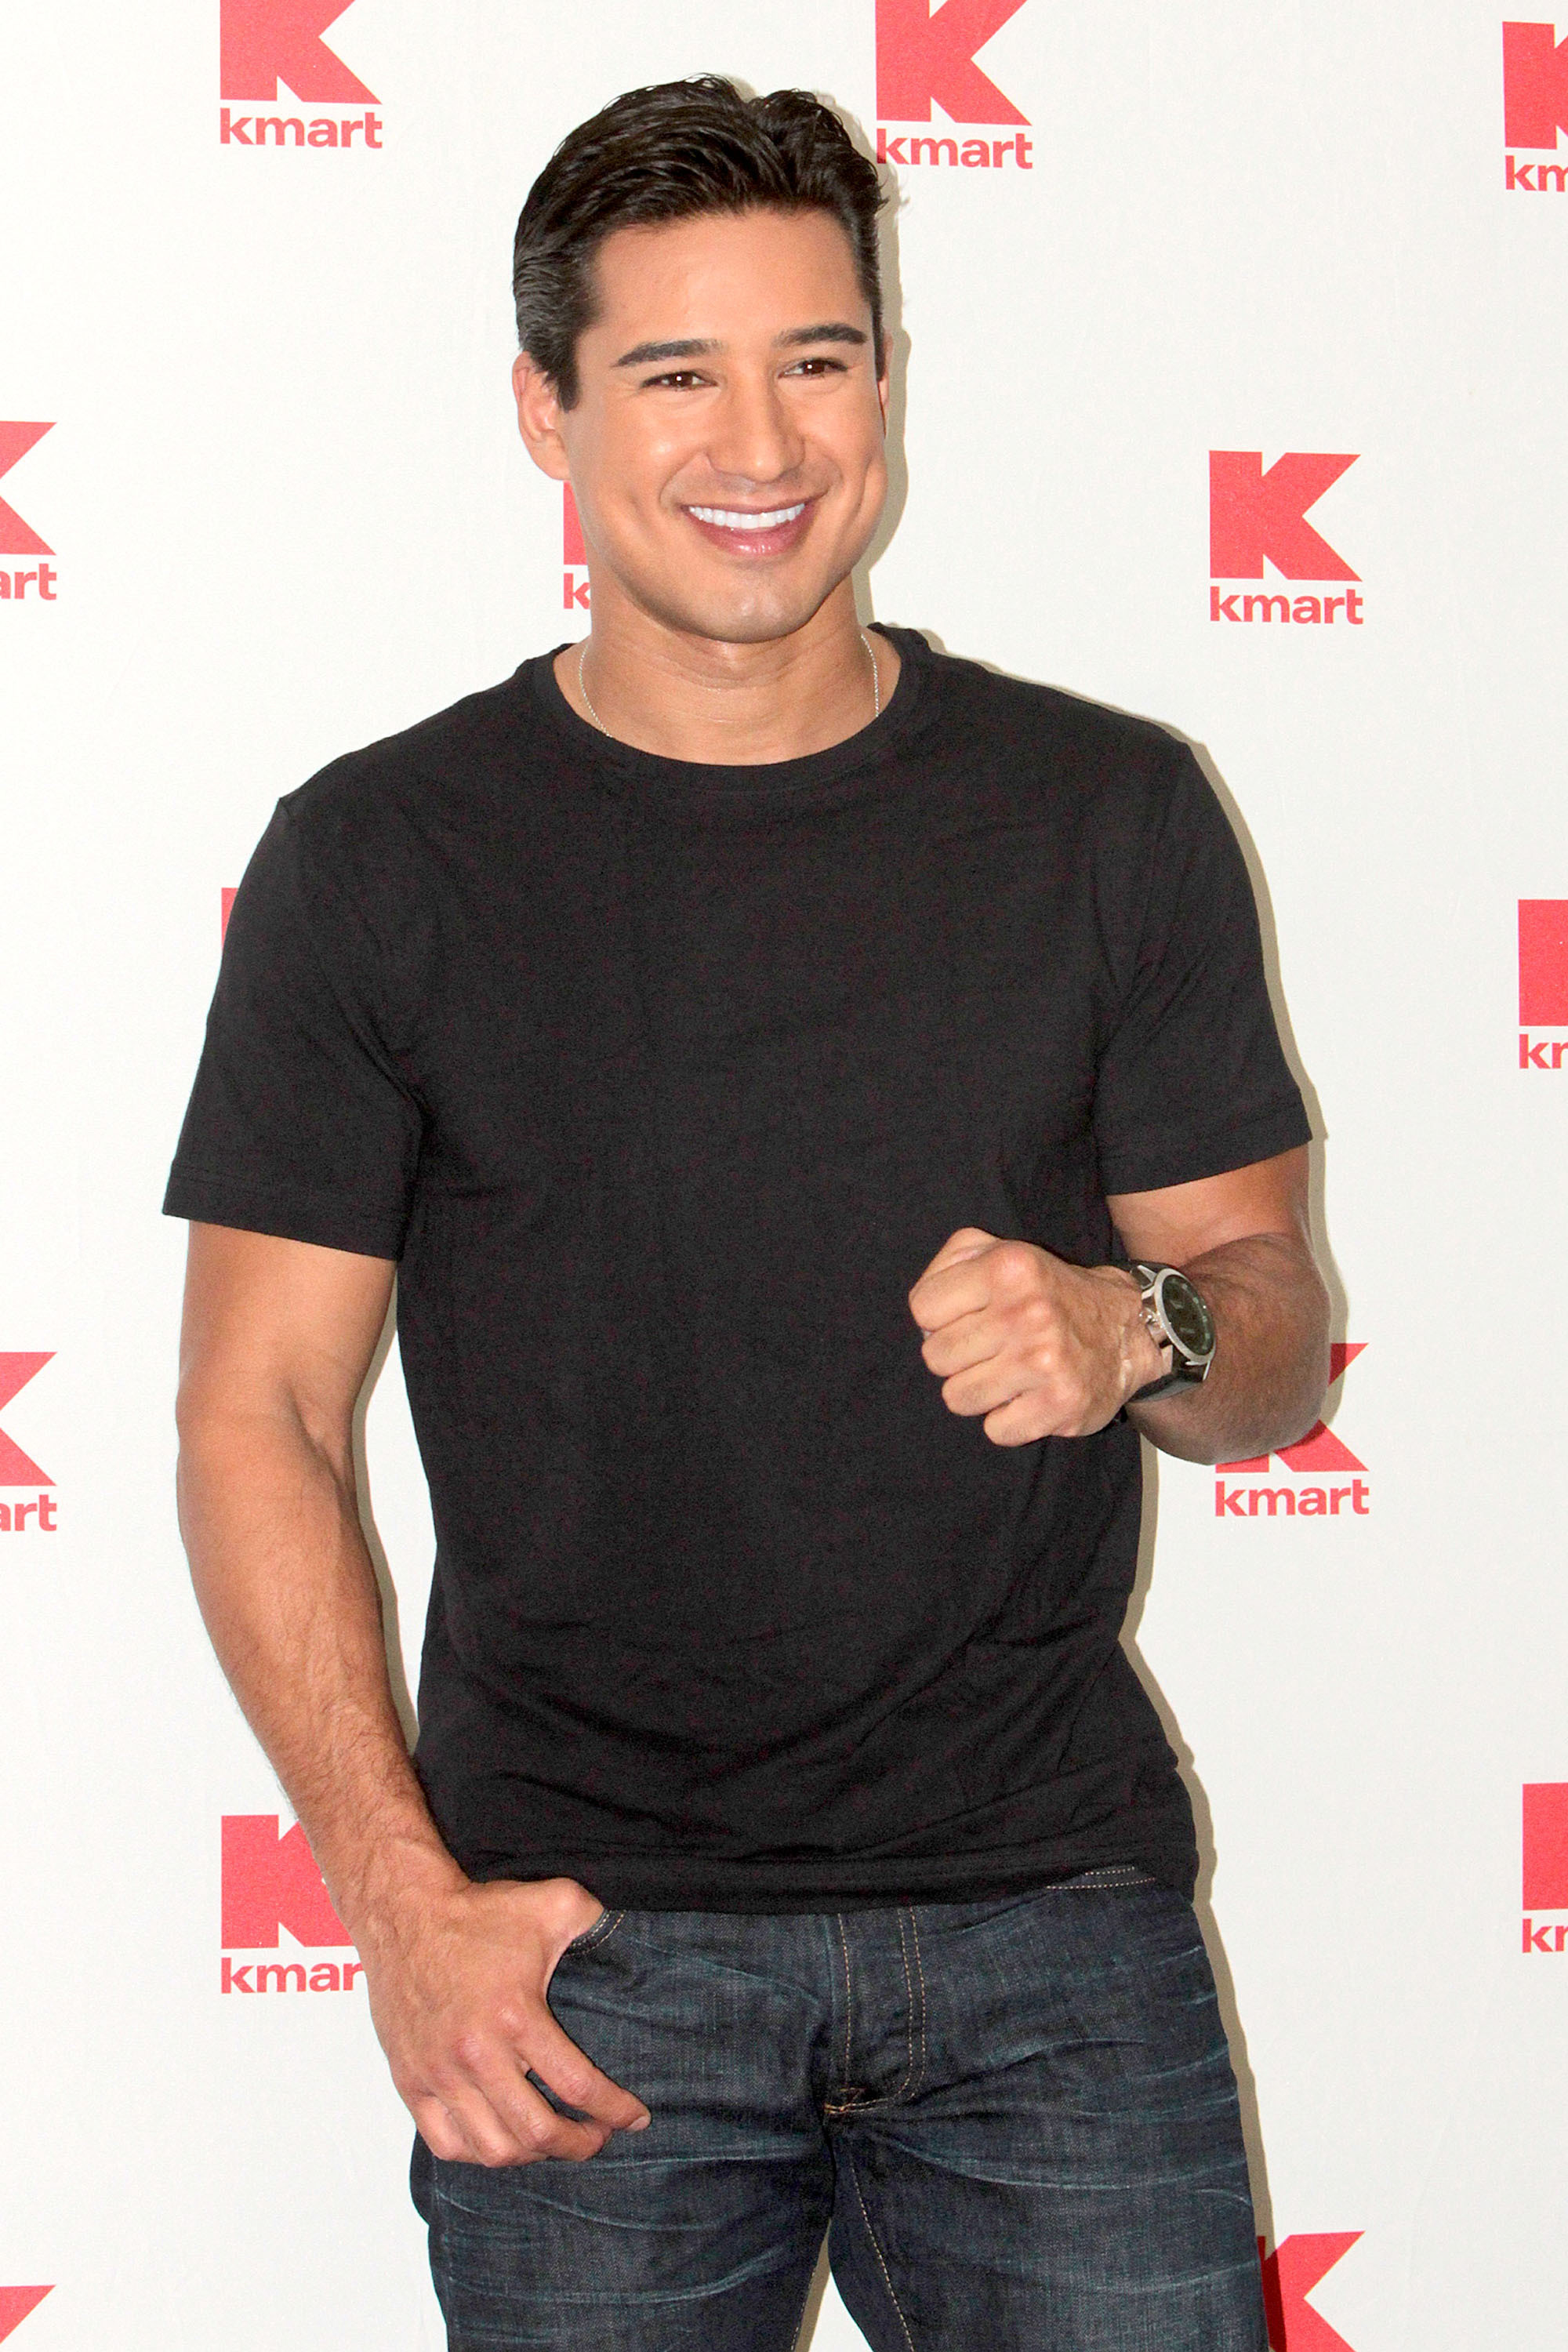 mario lopez red carpet dimples tight t shirt